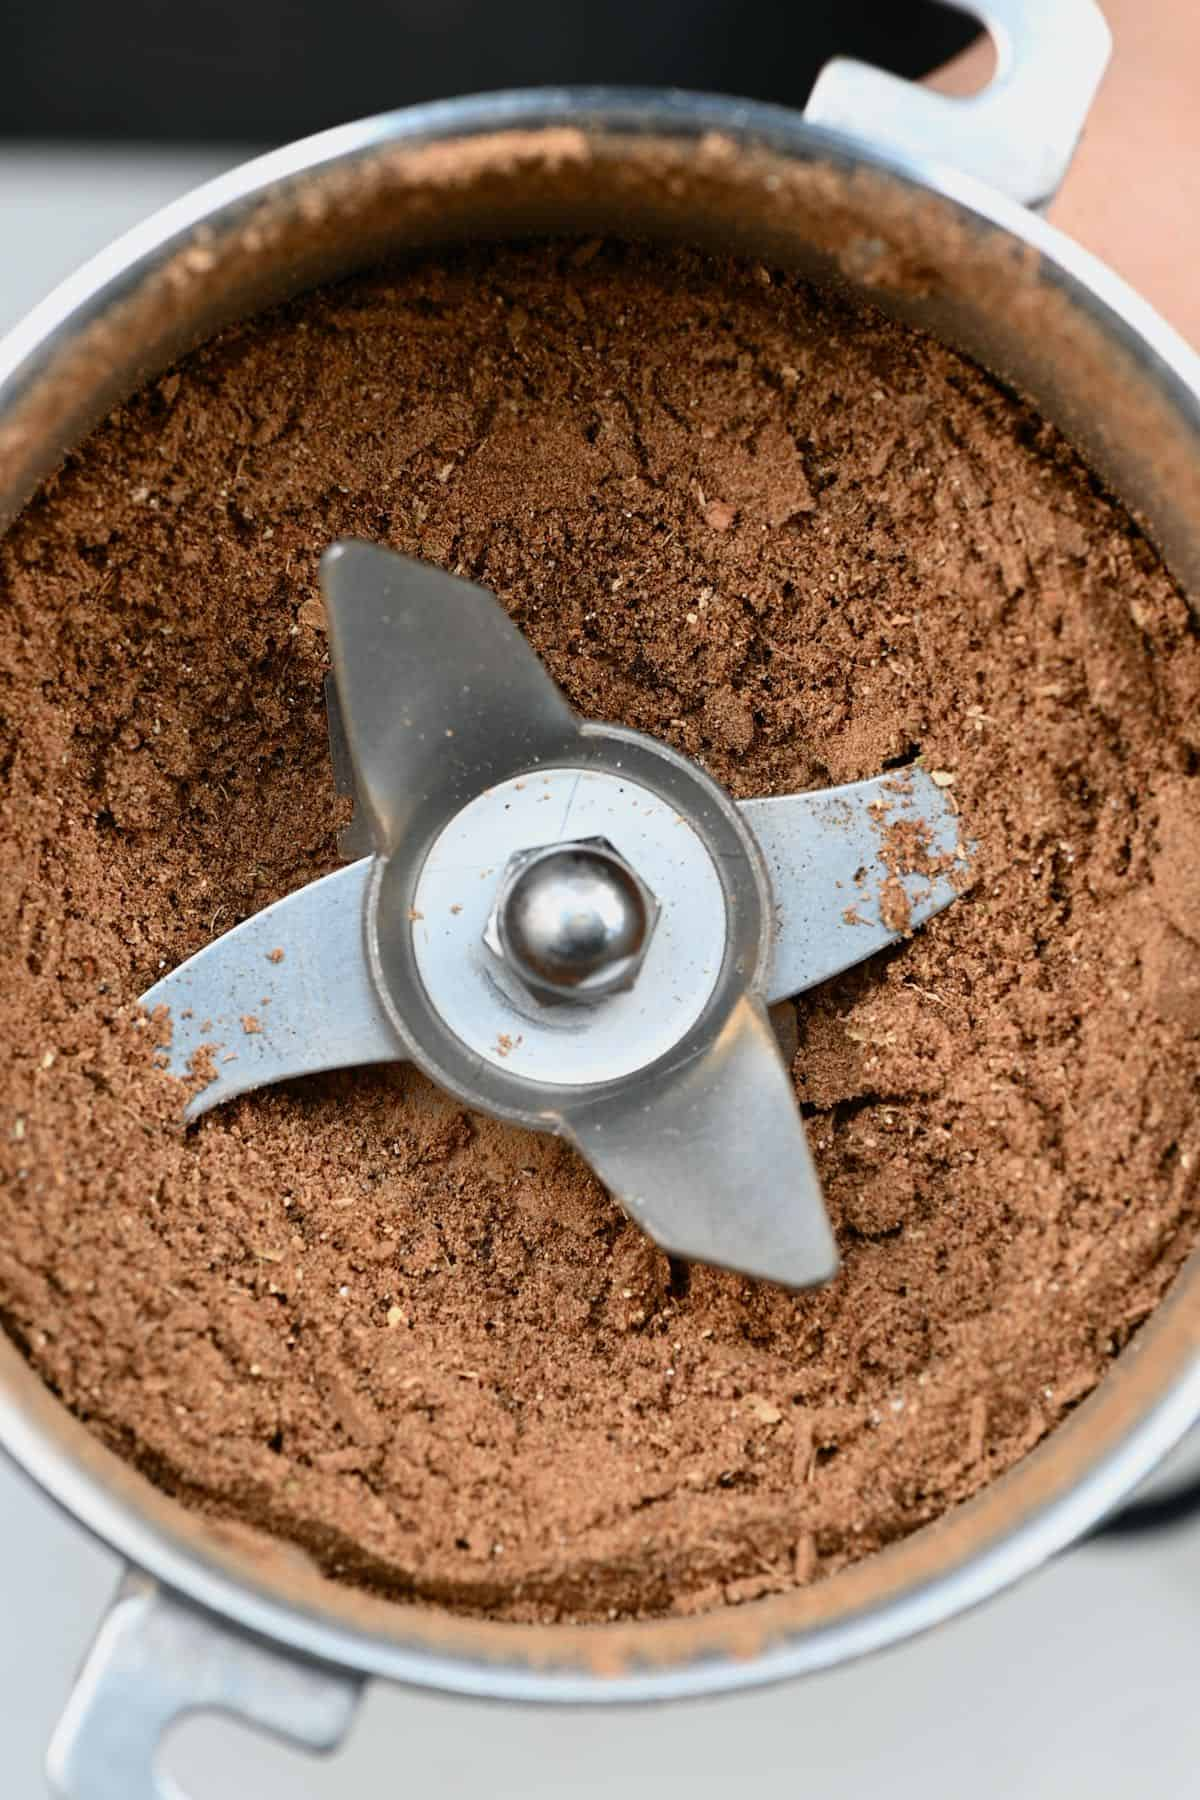 Ground Middle Eastern spice mix